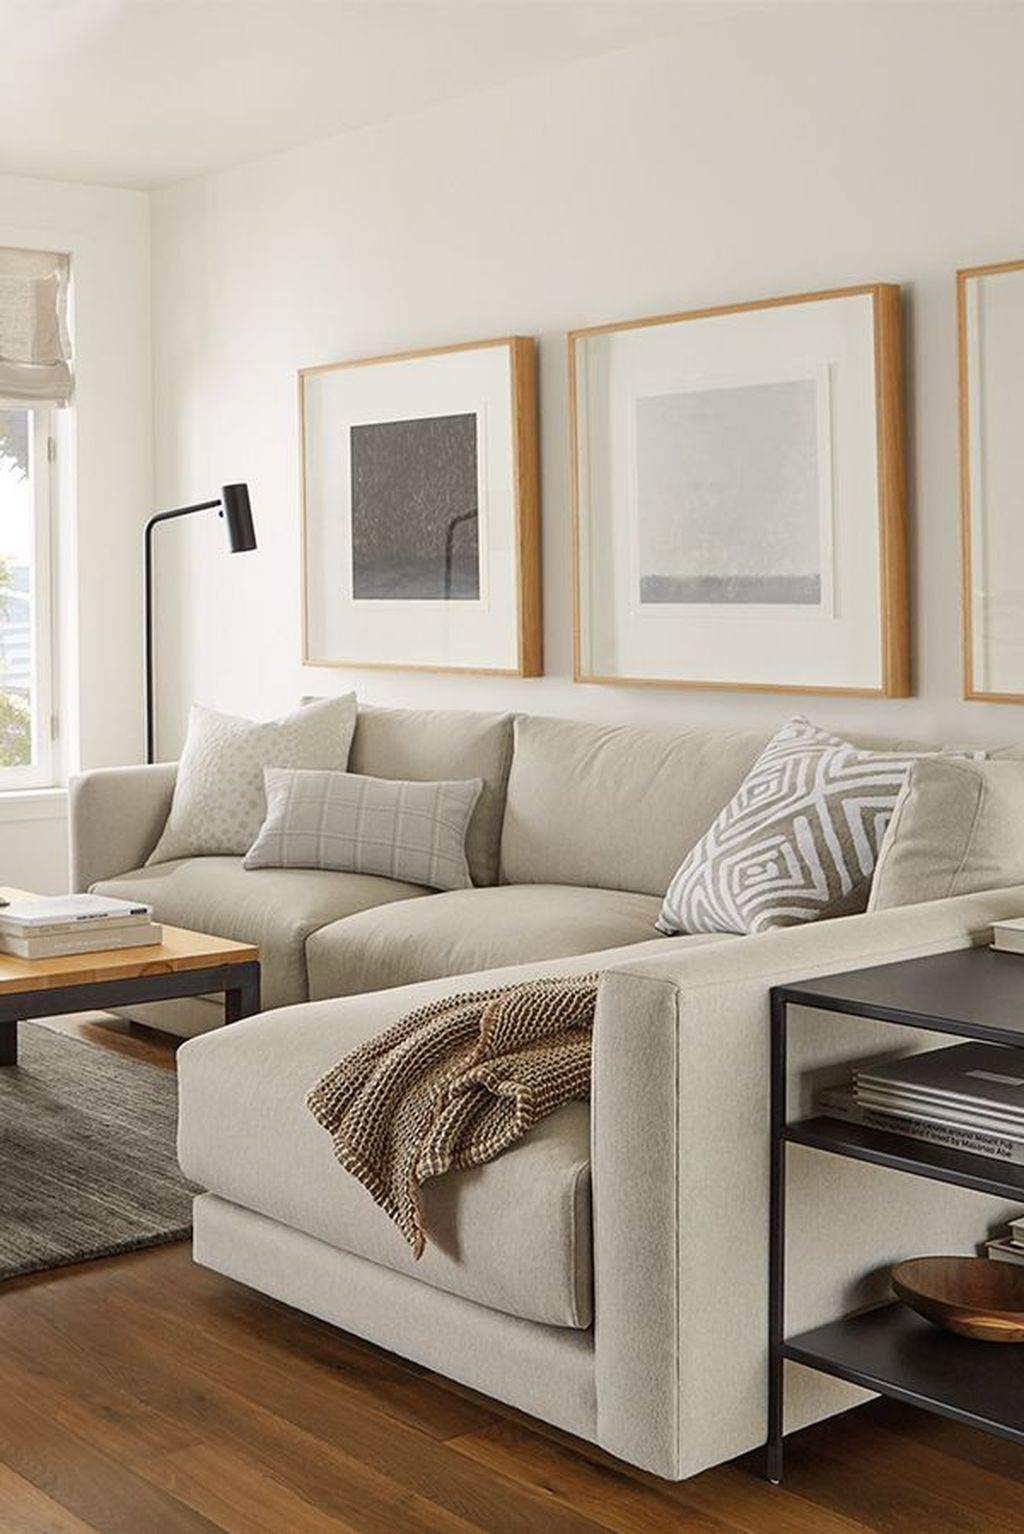 Graceful Living Room Design Ideas That You Need To Try 22